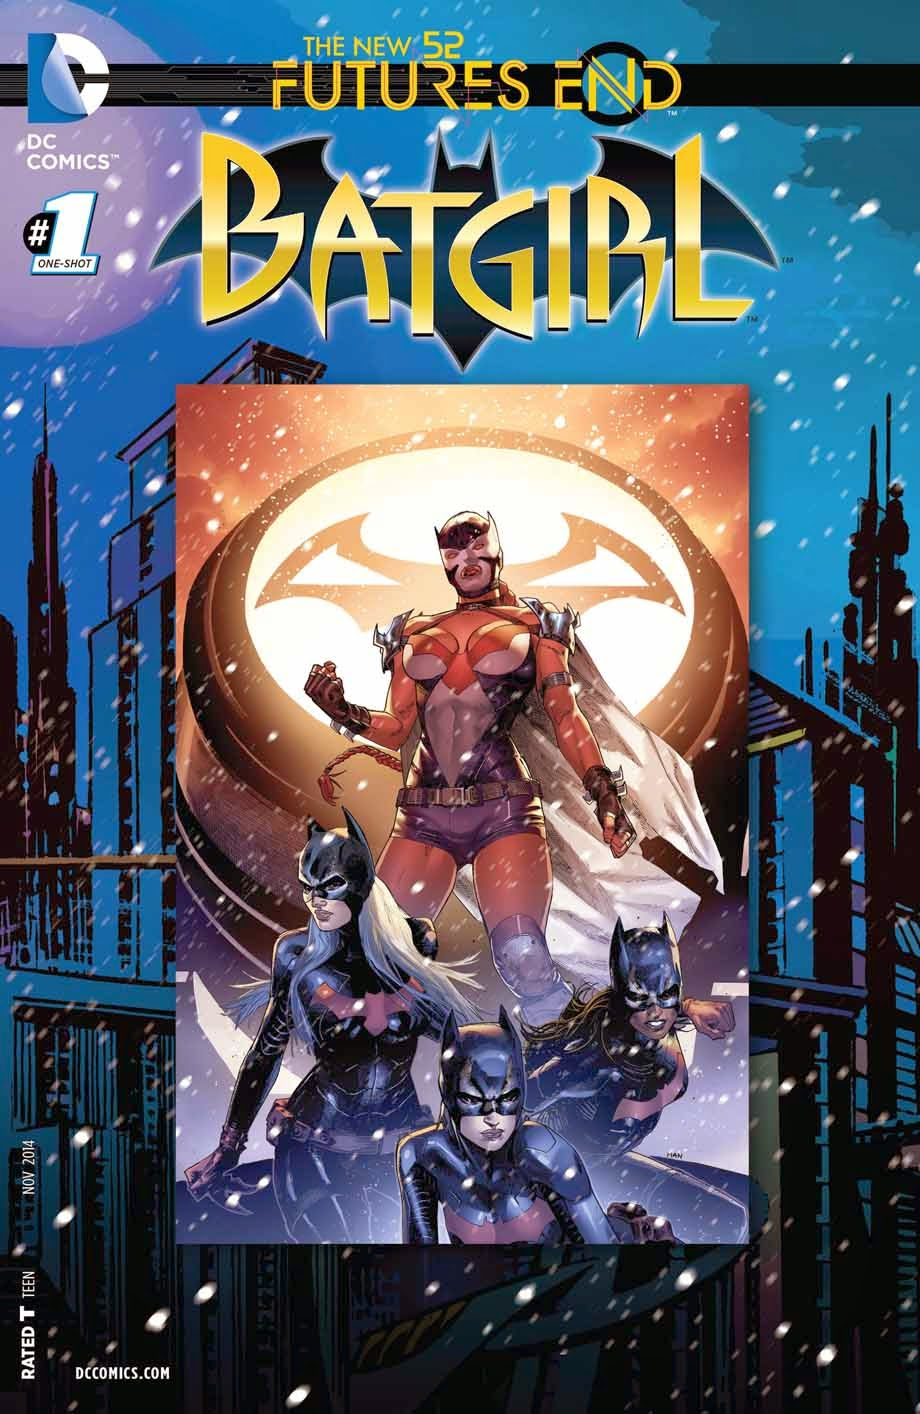 Batgirl Future's End #1